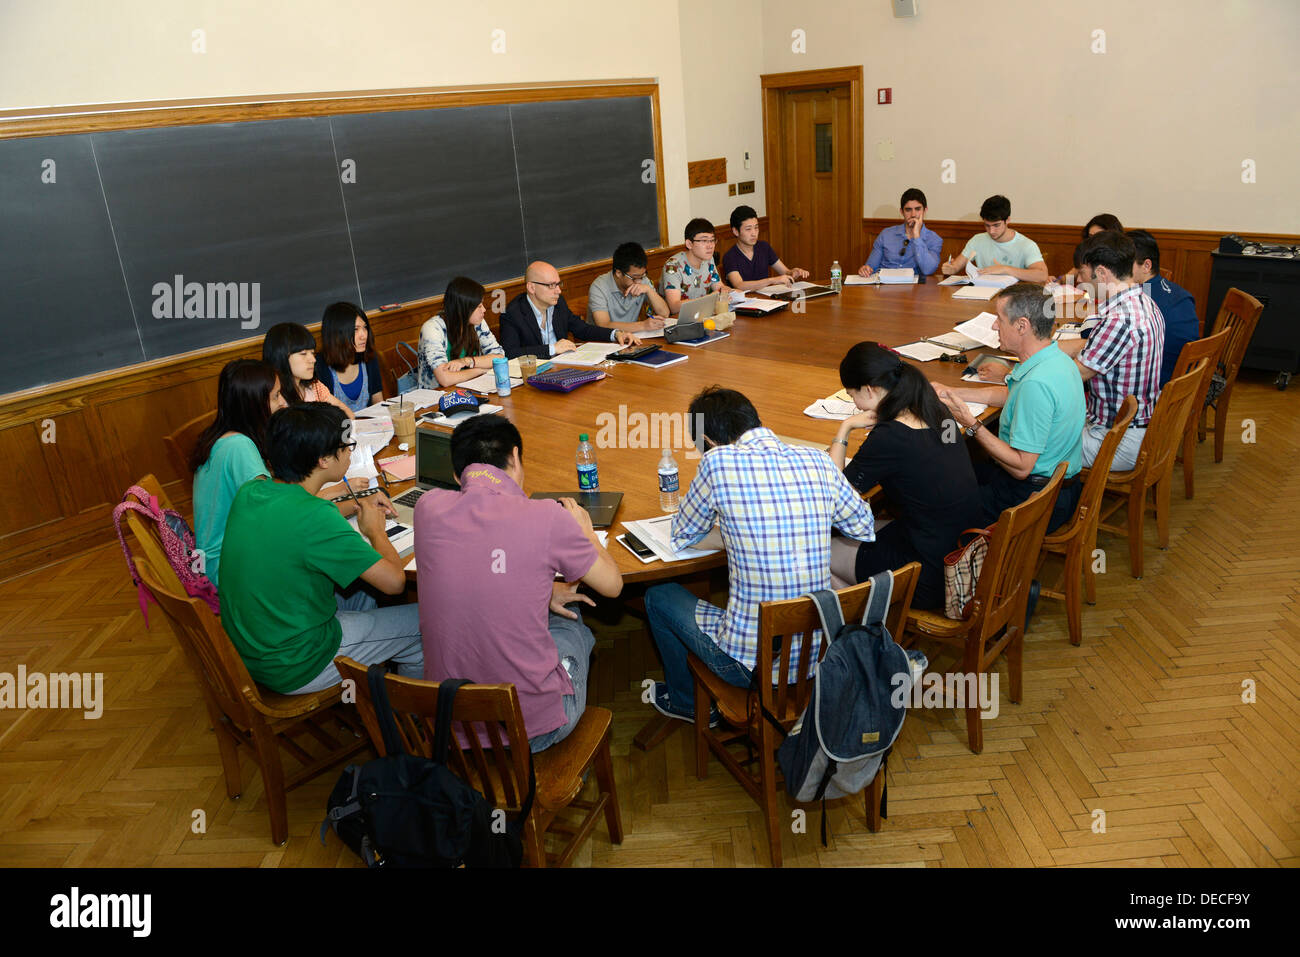 Business seminar for young foreign professionals interested in learning more about international business at Yale Summer School. - Stock Image